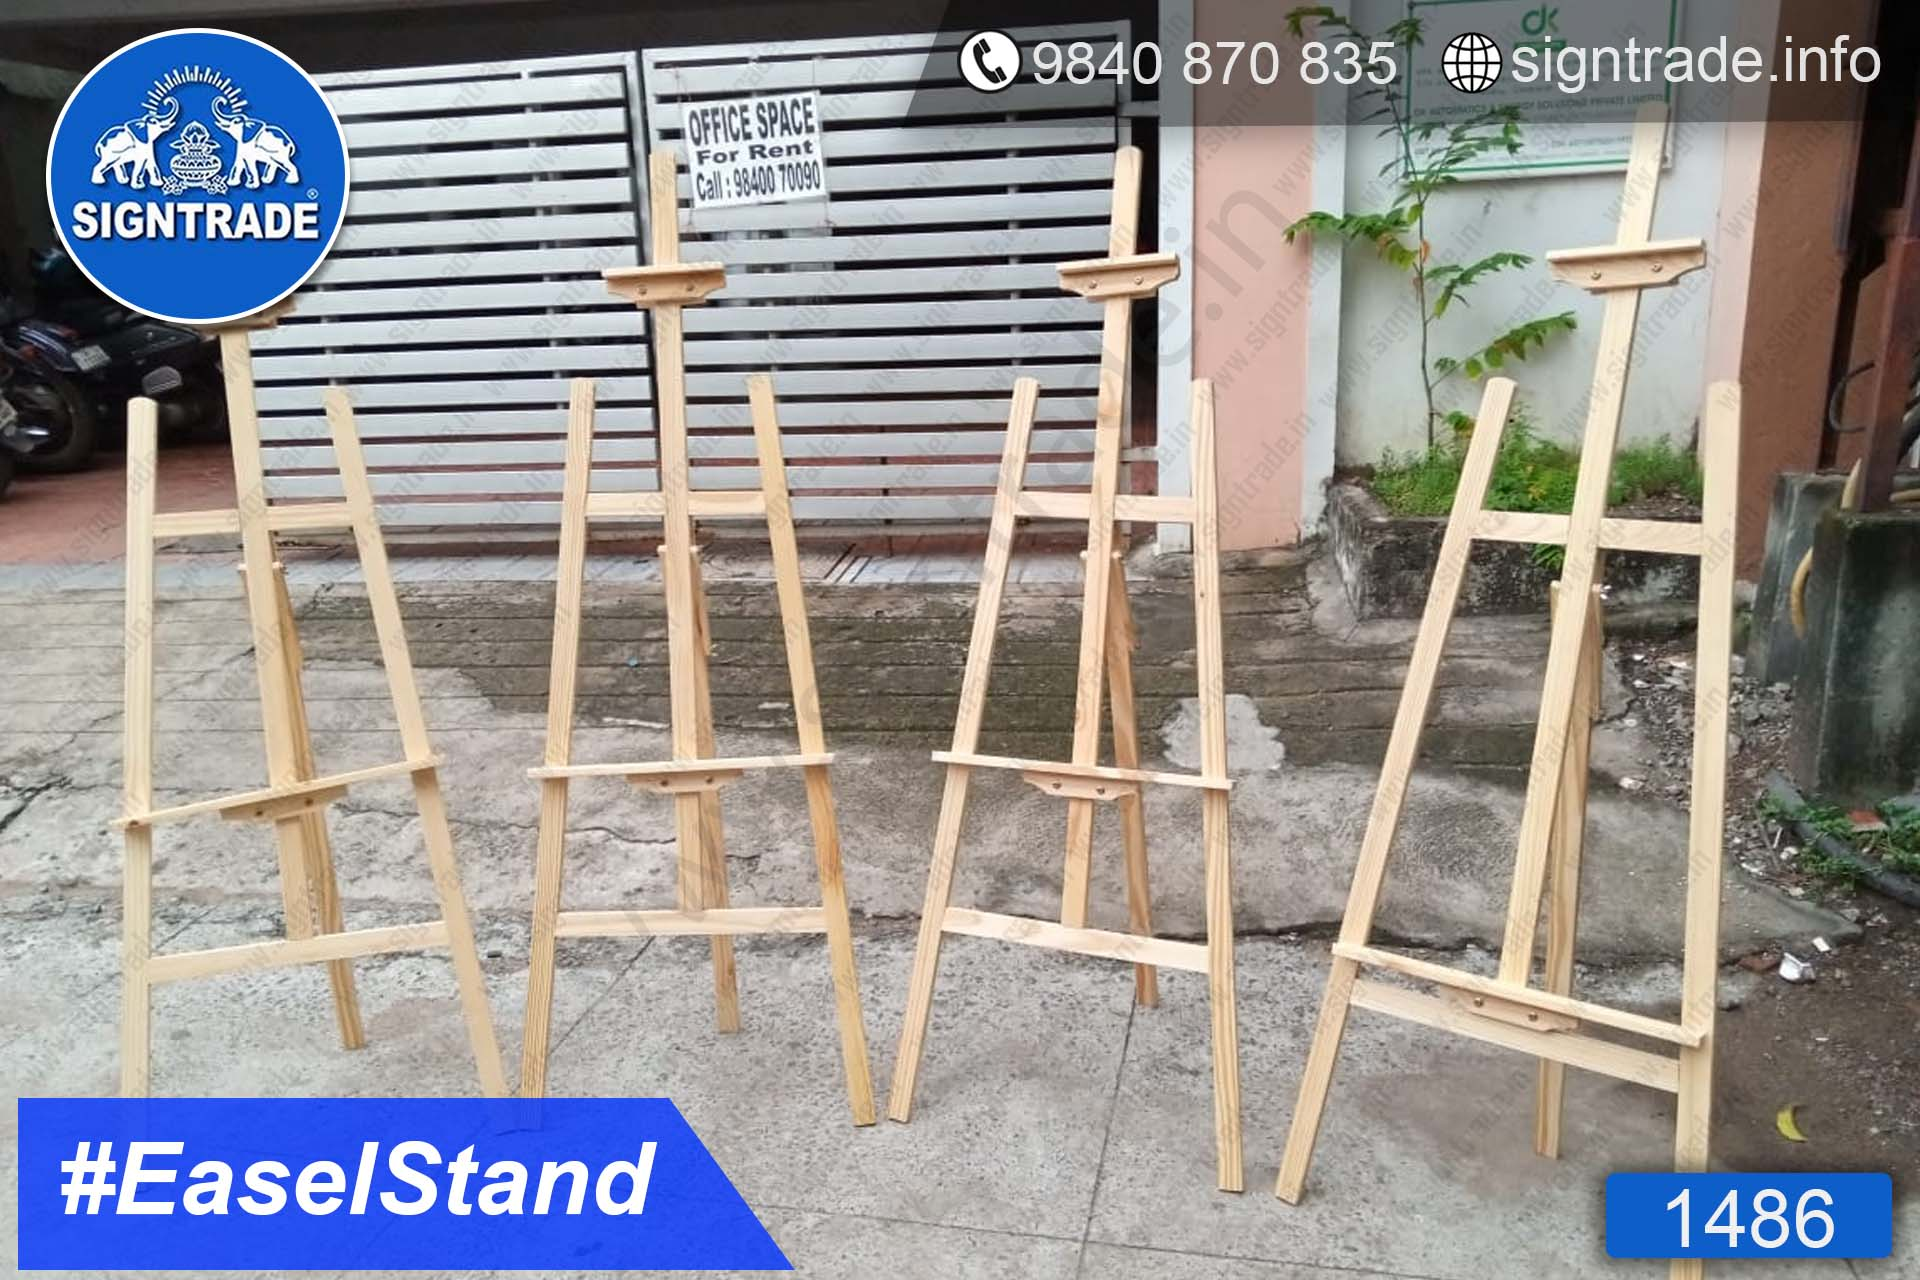 Easel Stand, Chennai - SIGNTRADE - Promotional Easel Stand Manufacturers in Chennai